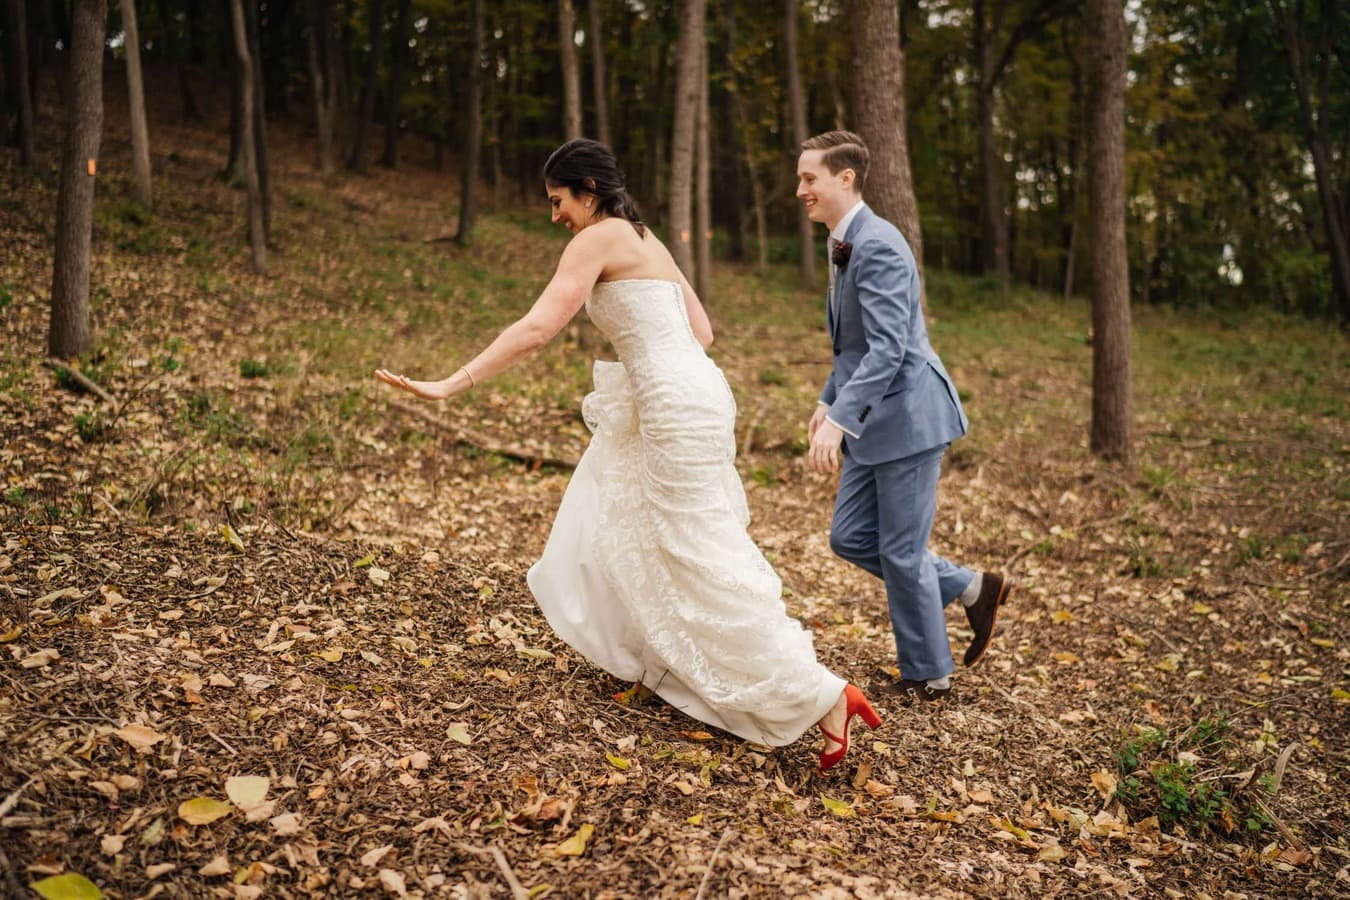 Bride and groom walk up fall hill excitedly together at Catskill wedding venue.